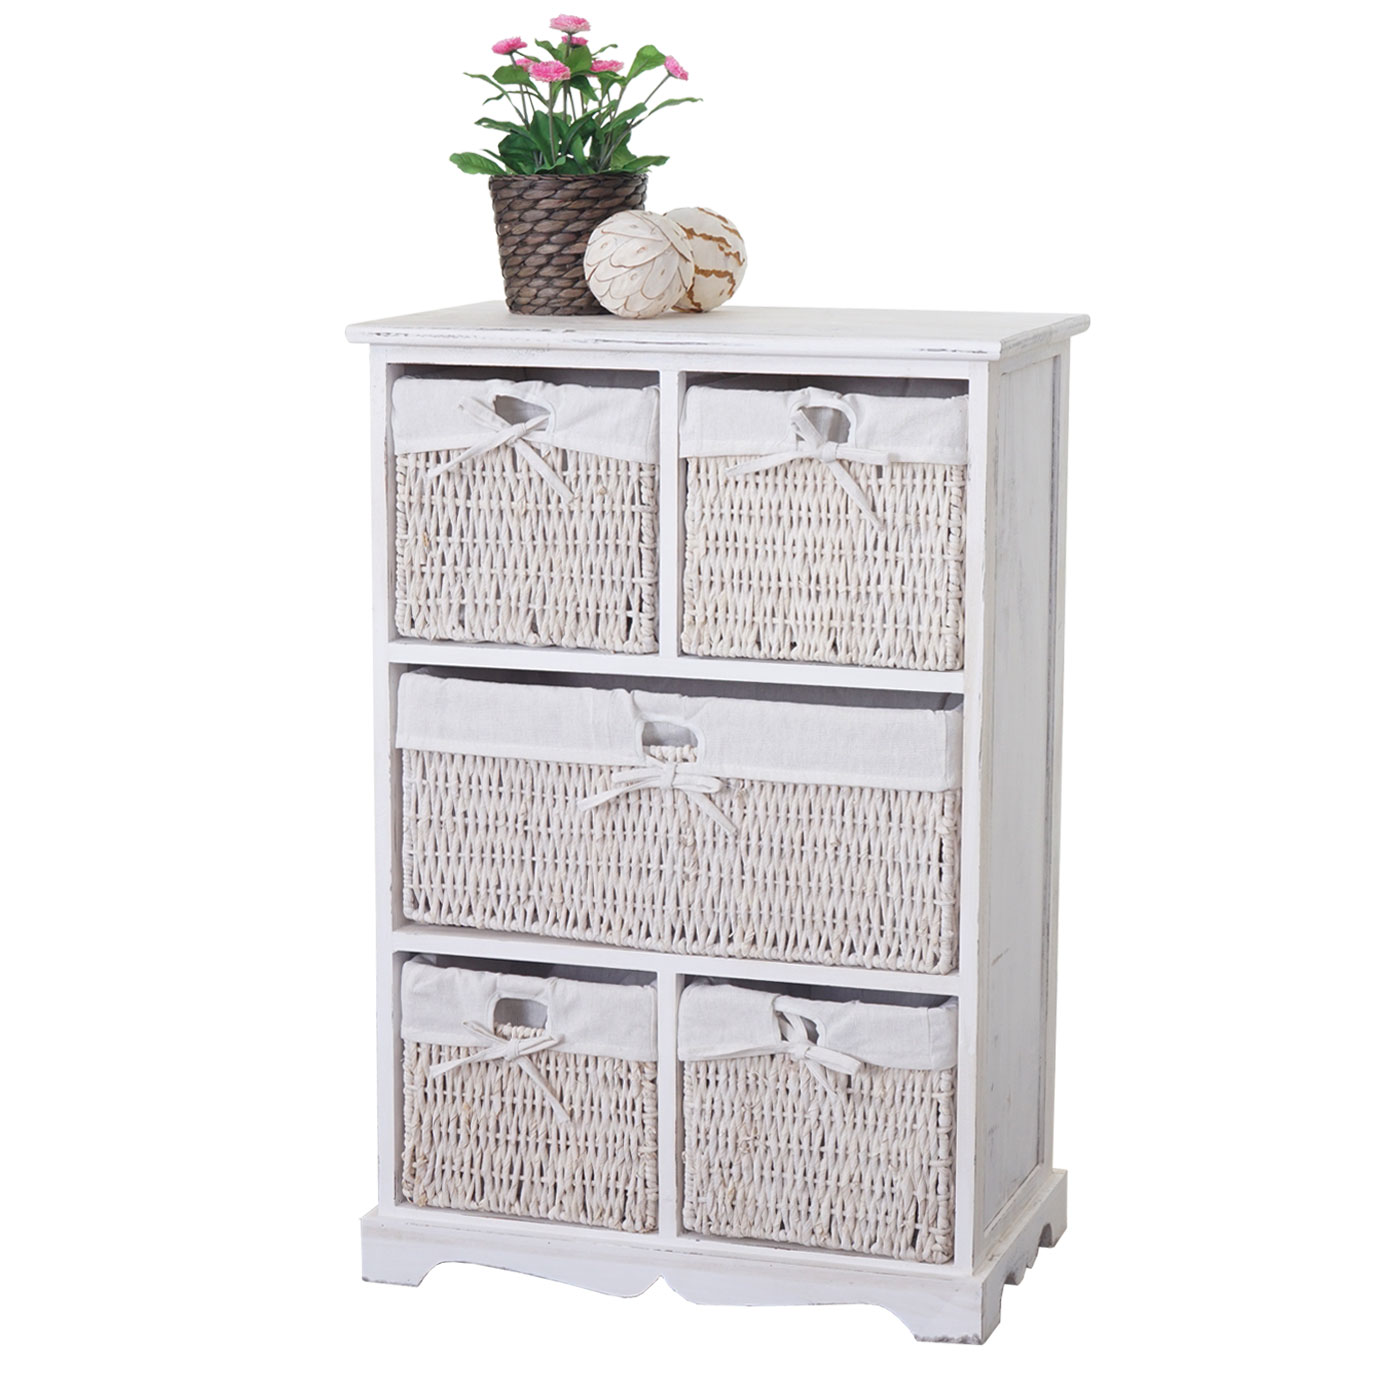 kommode dundee shabby look 90x60x30cm weiss. Black Bedroom Furniture Sets. Home Design Ideas